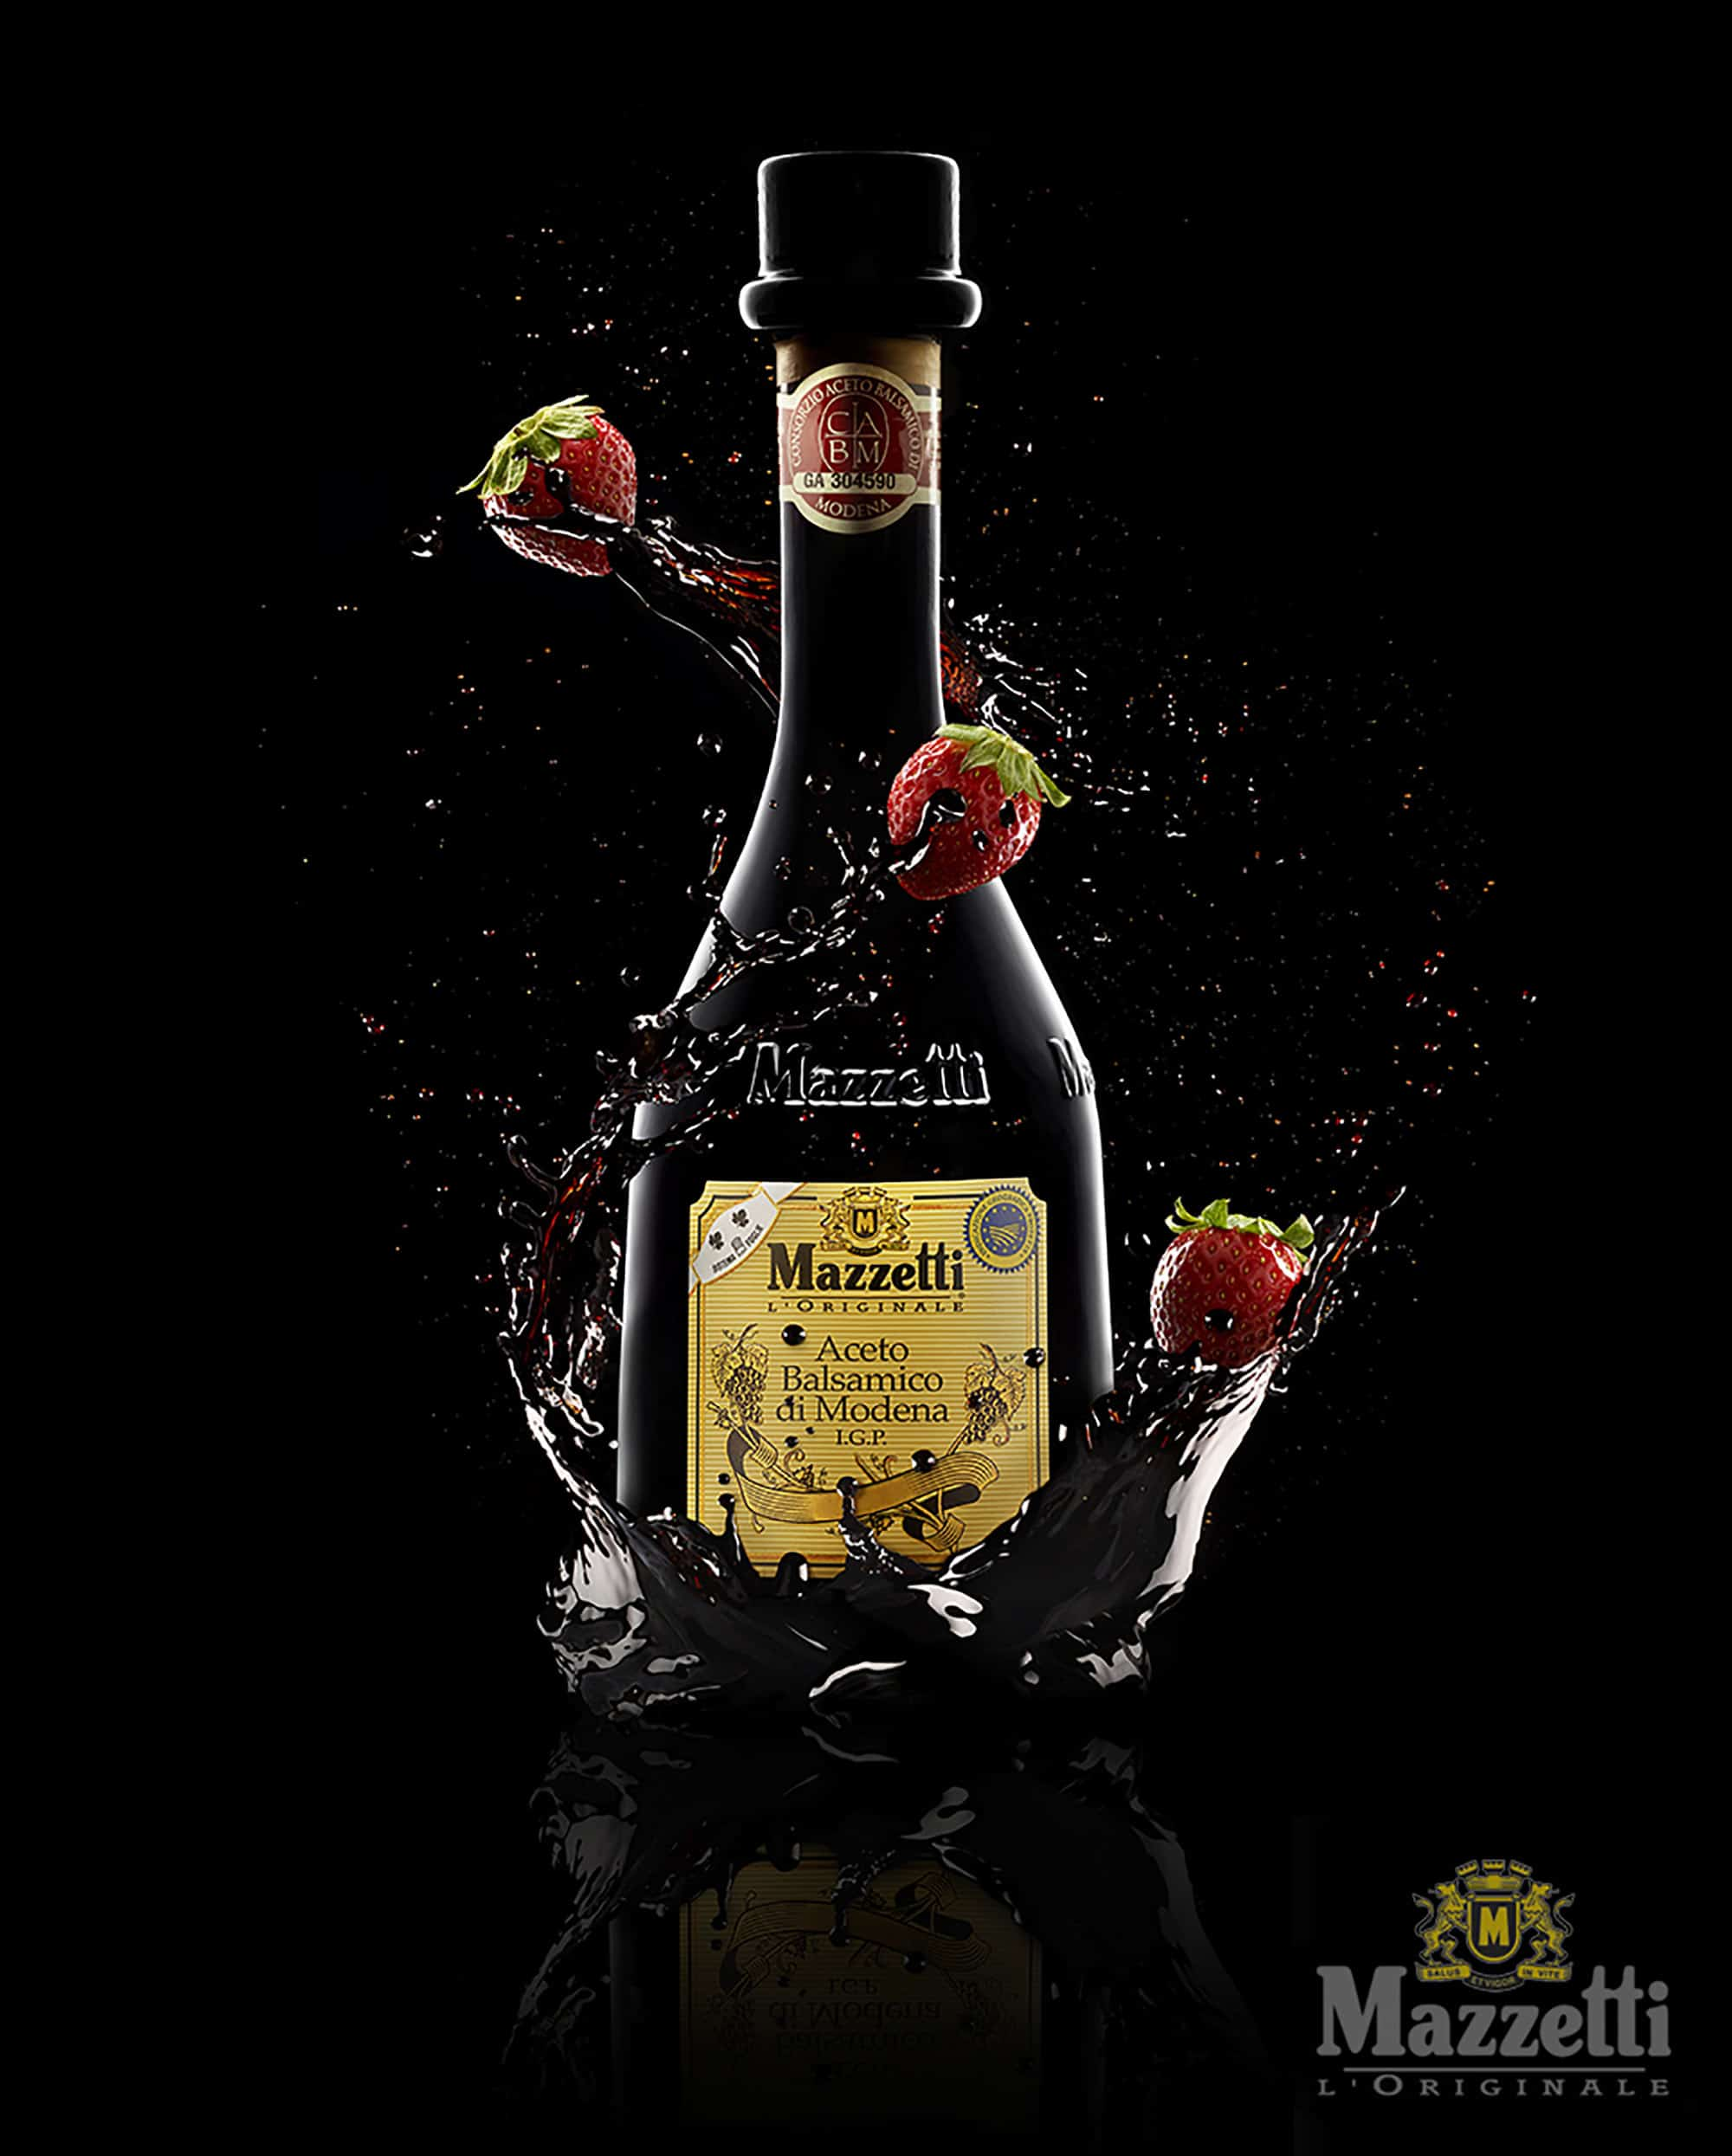 Aceto Balsamico Still Life Shot for Mazzetti by Fotografando